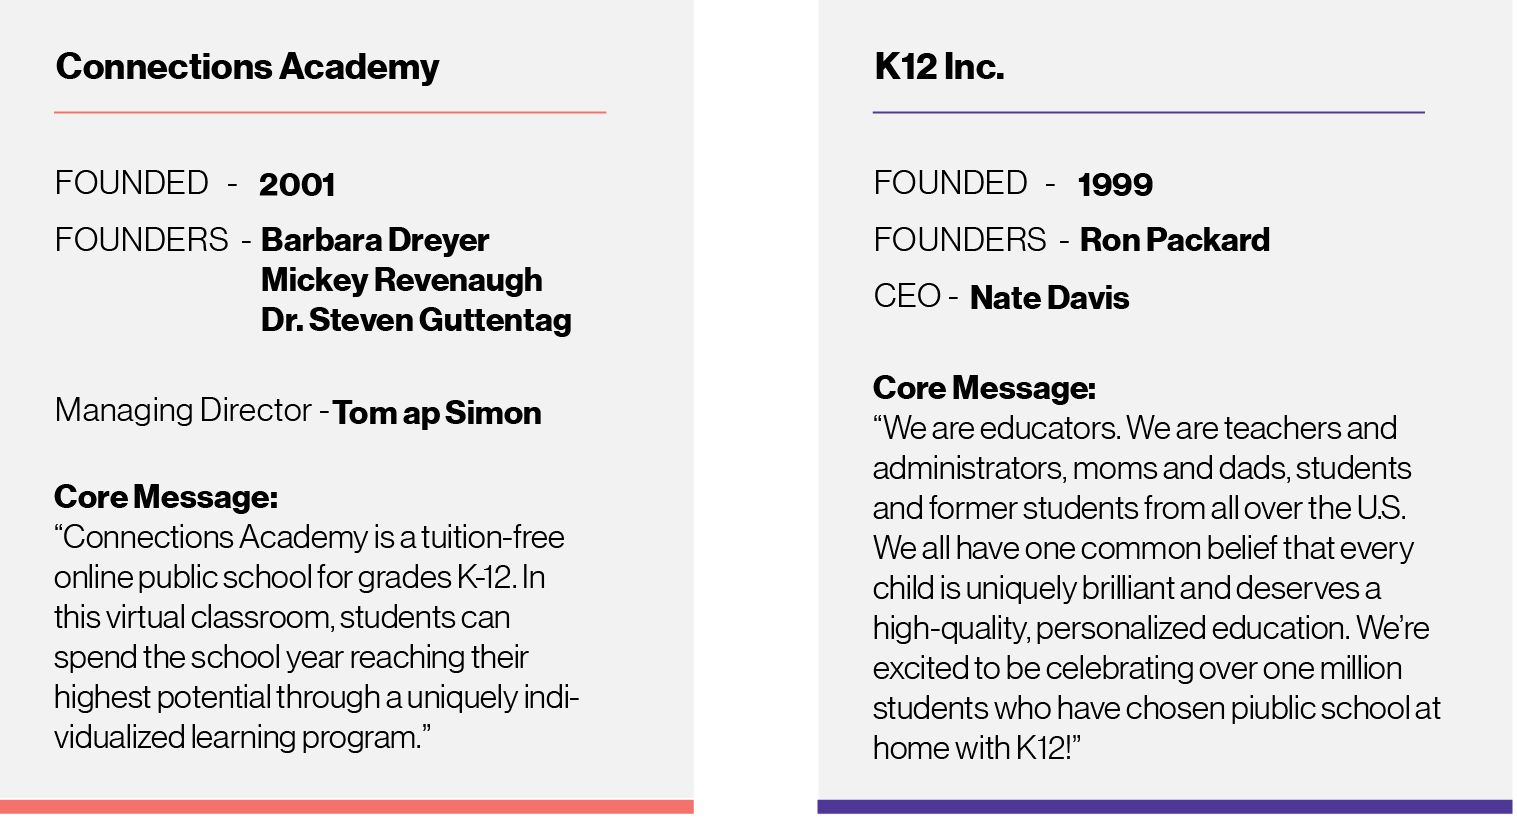 Graphic: Connections Academy founded 2001, founders and managing directors listed. K12 Inc. founded 1999, founder and ceo listed